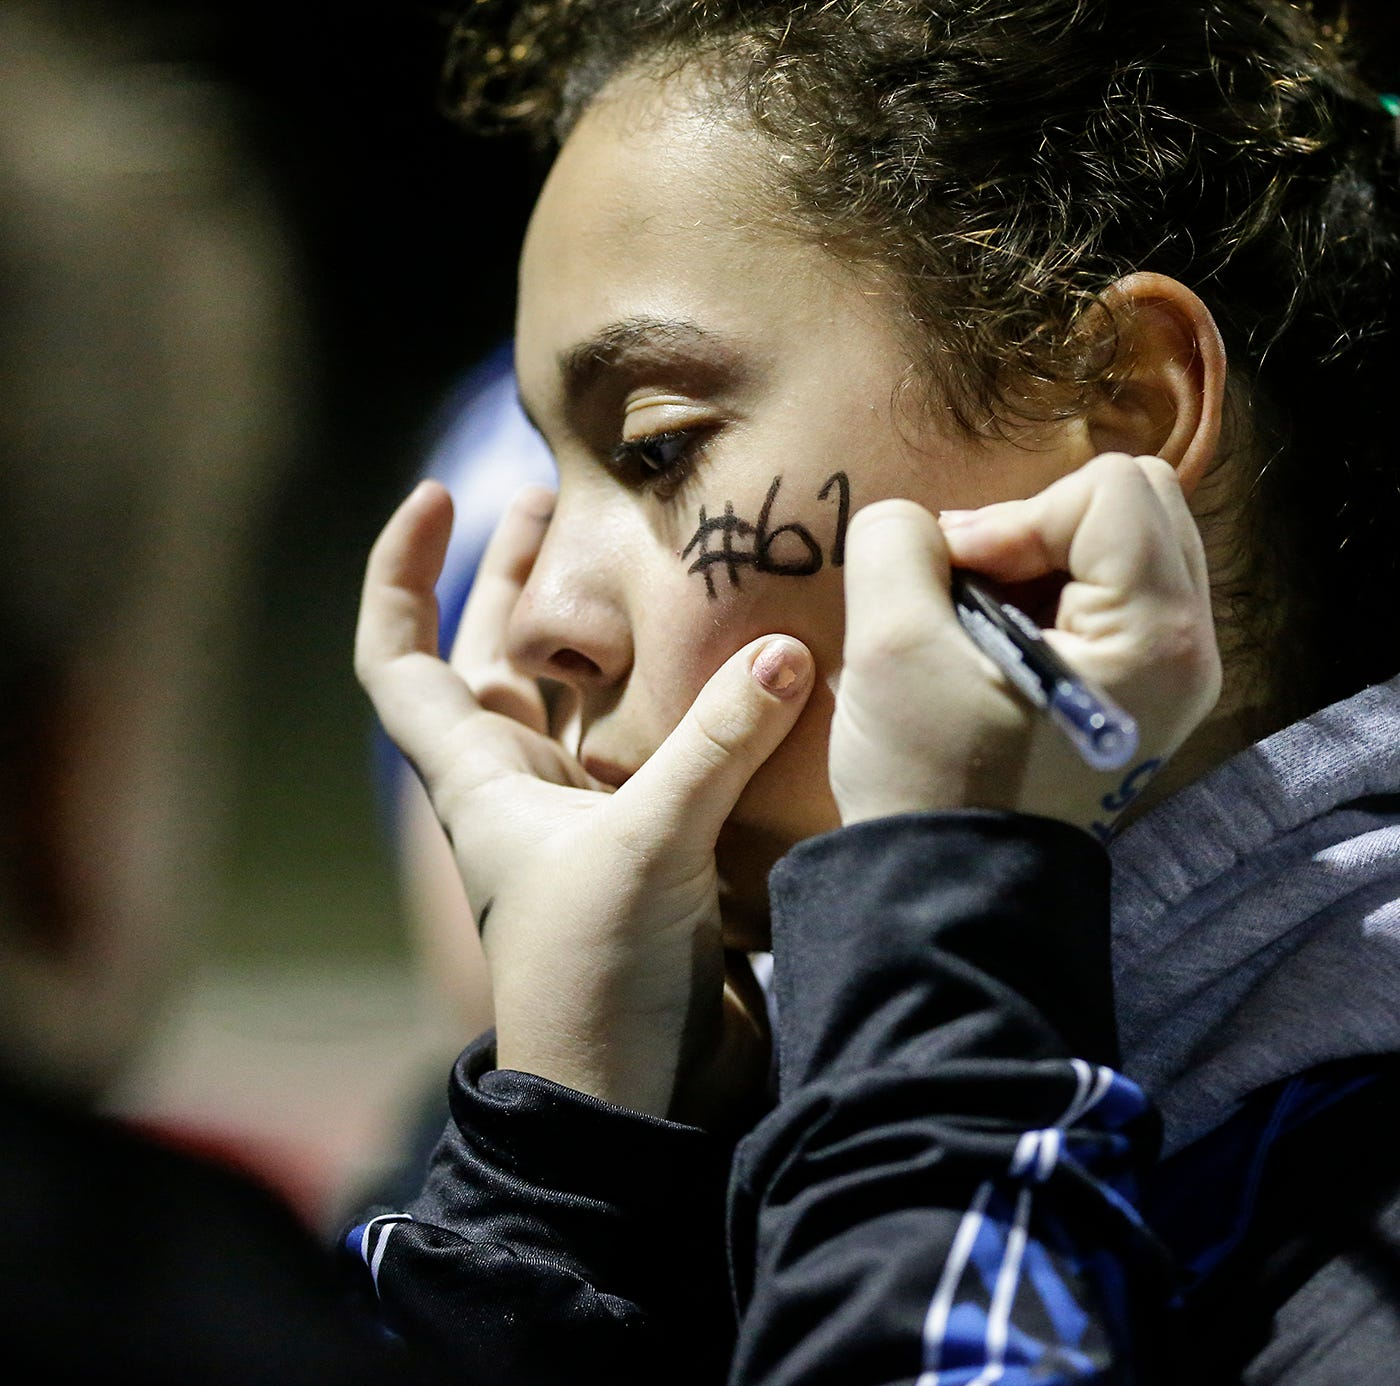 SMSA students, staff come together as family after loss of student